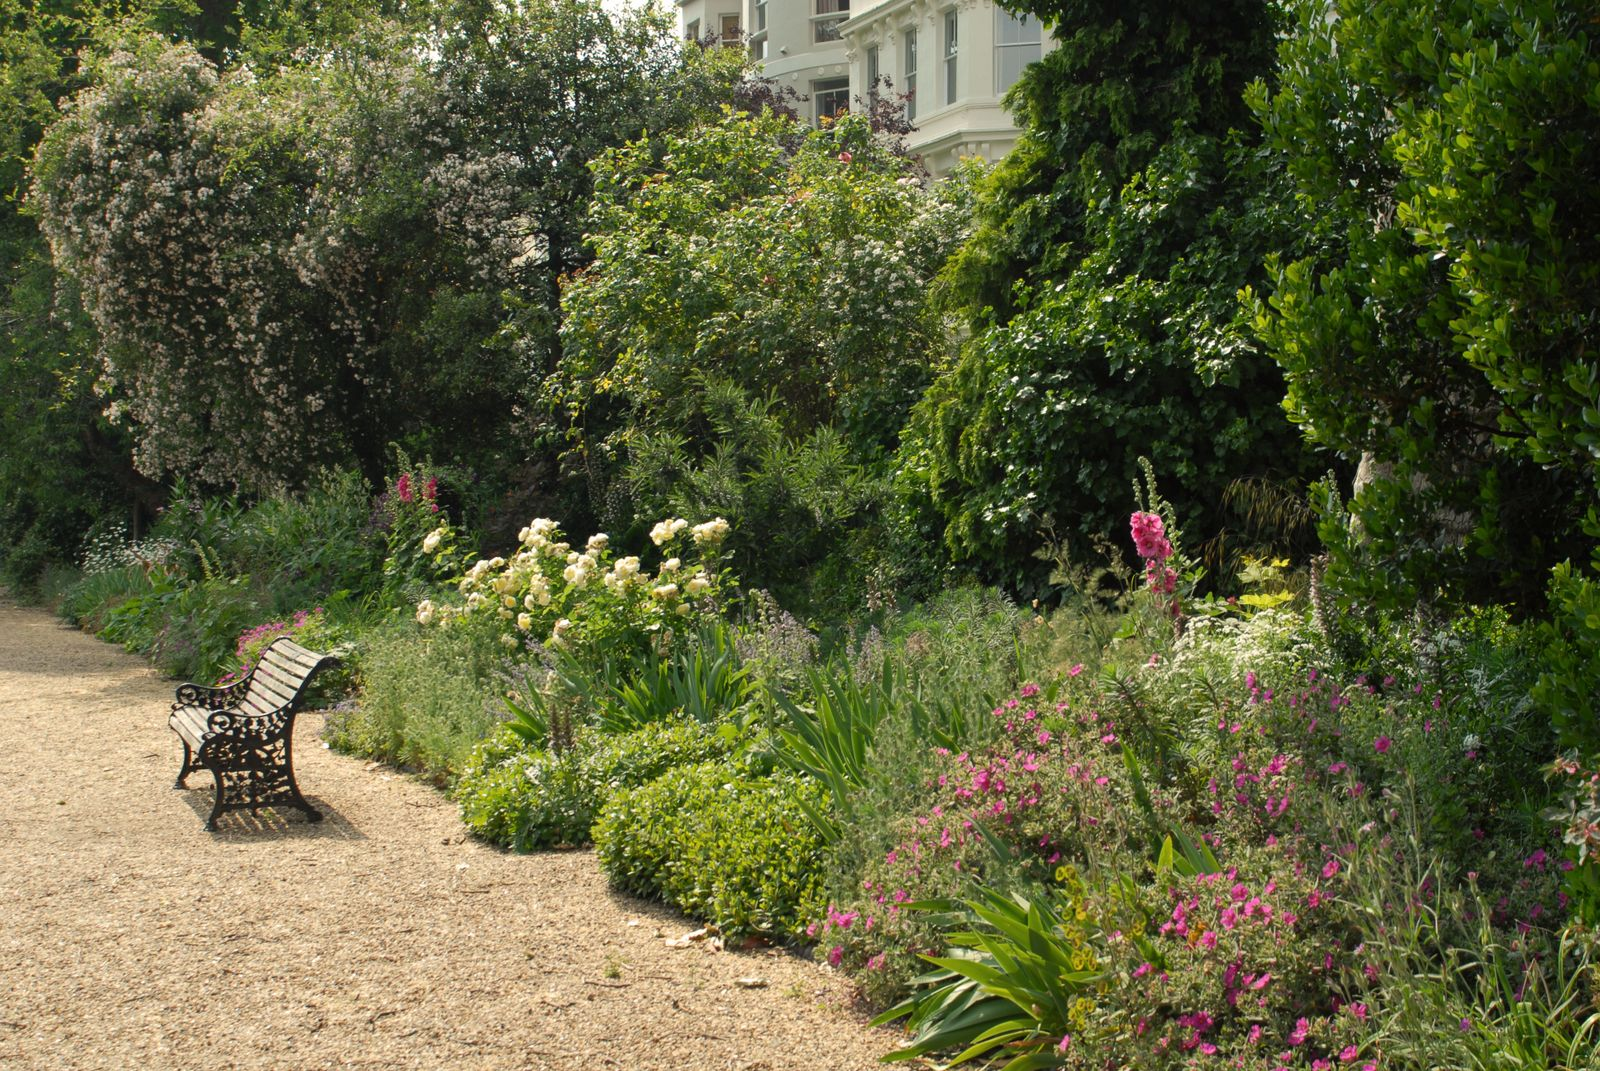 Winkworth Blog - Exploring garden squares in Prime Central London, Ladbroke Square Garden